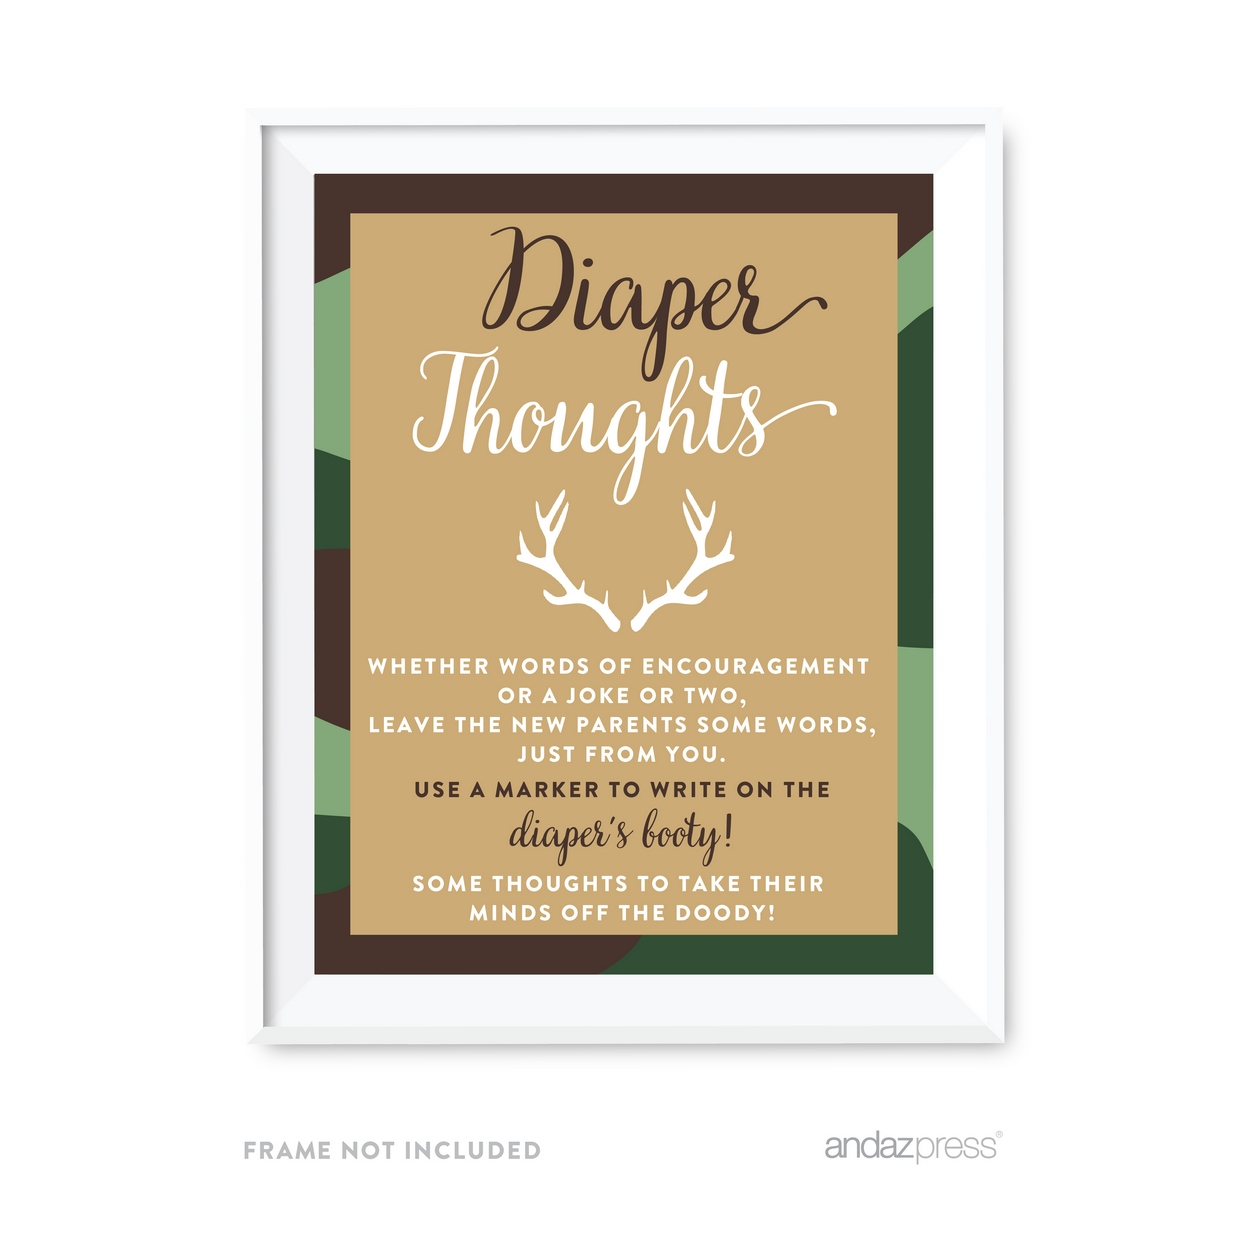 Diaper Thoughts Woodland Camouflage Boy Baby Shower Game Diaper Thoughts